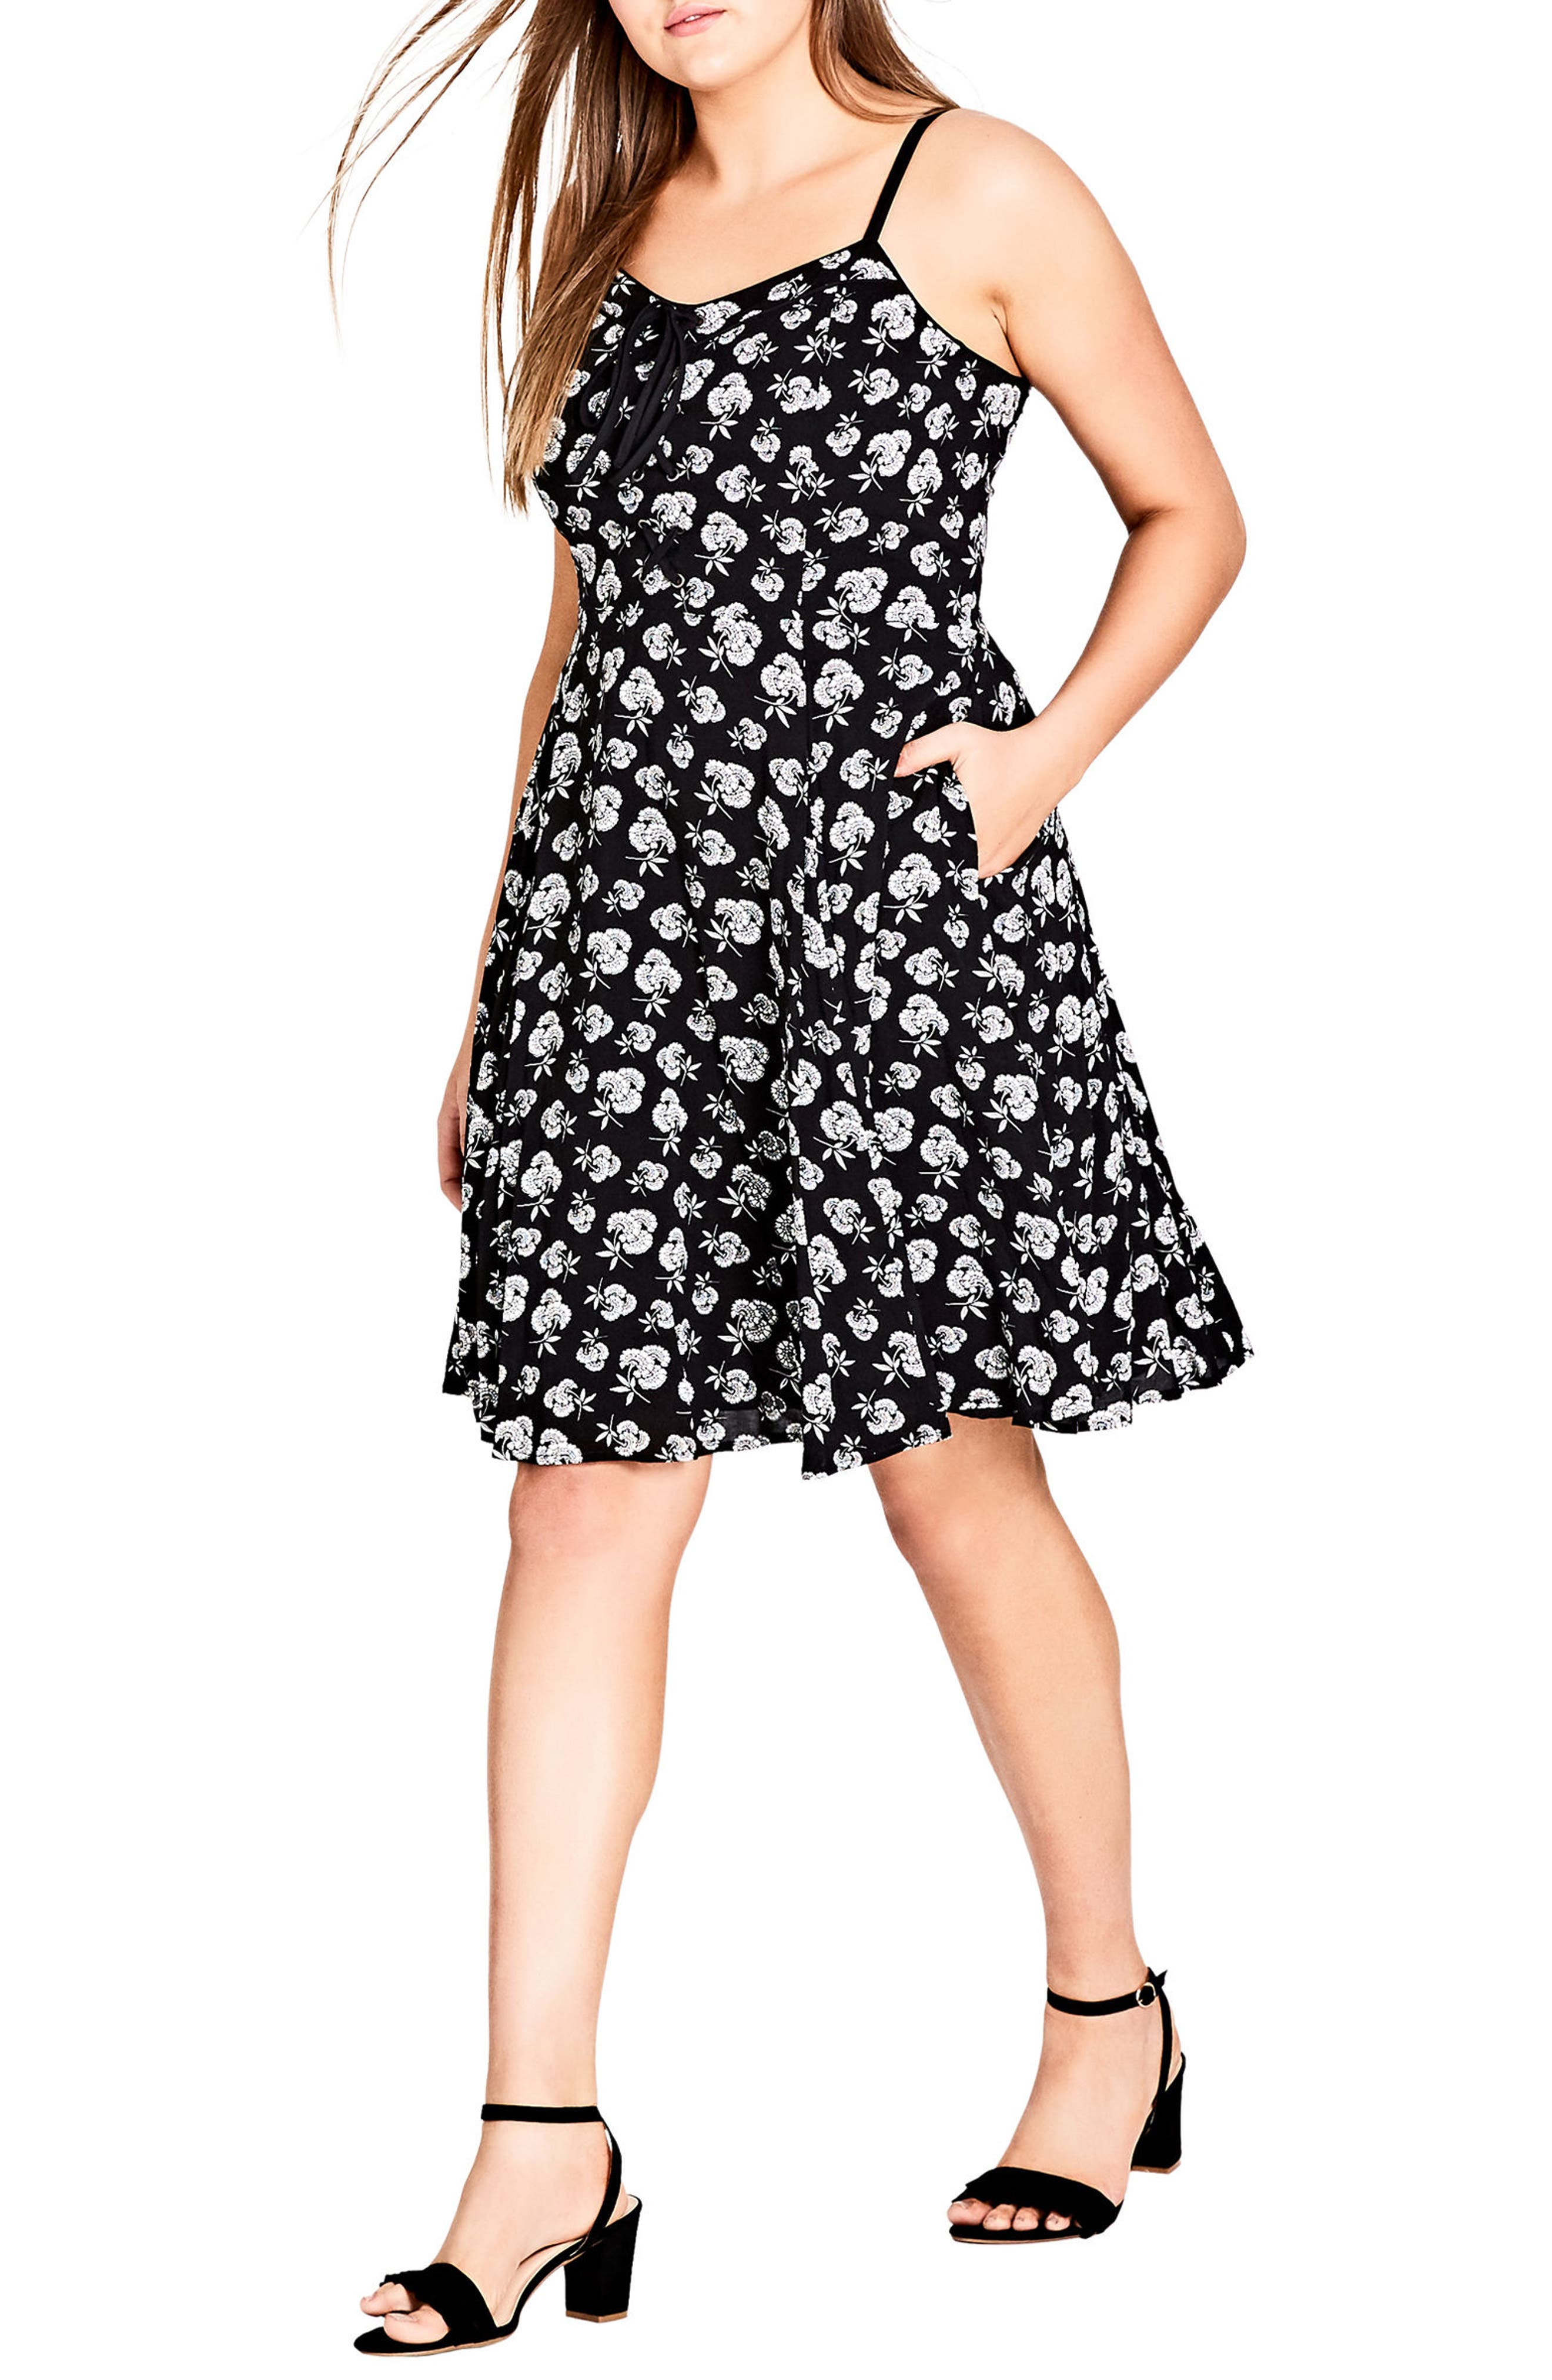 Deco Floral A-Line Dress,                             Main thumbnail 1, color,                             003